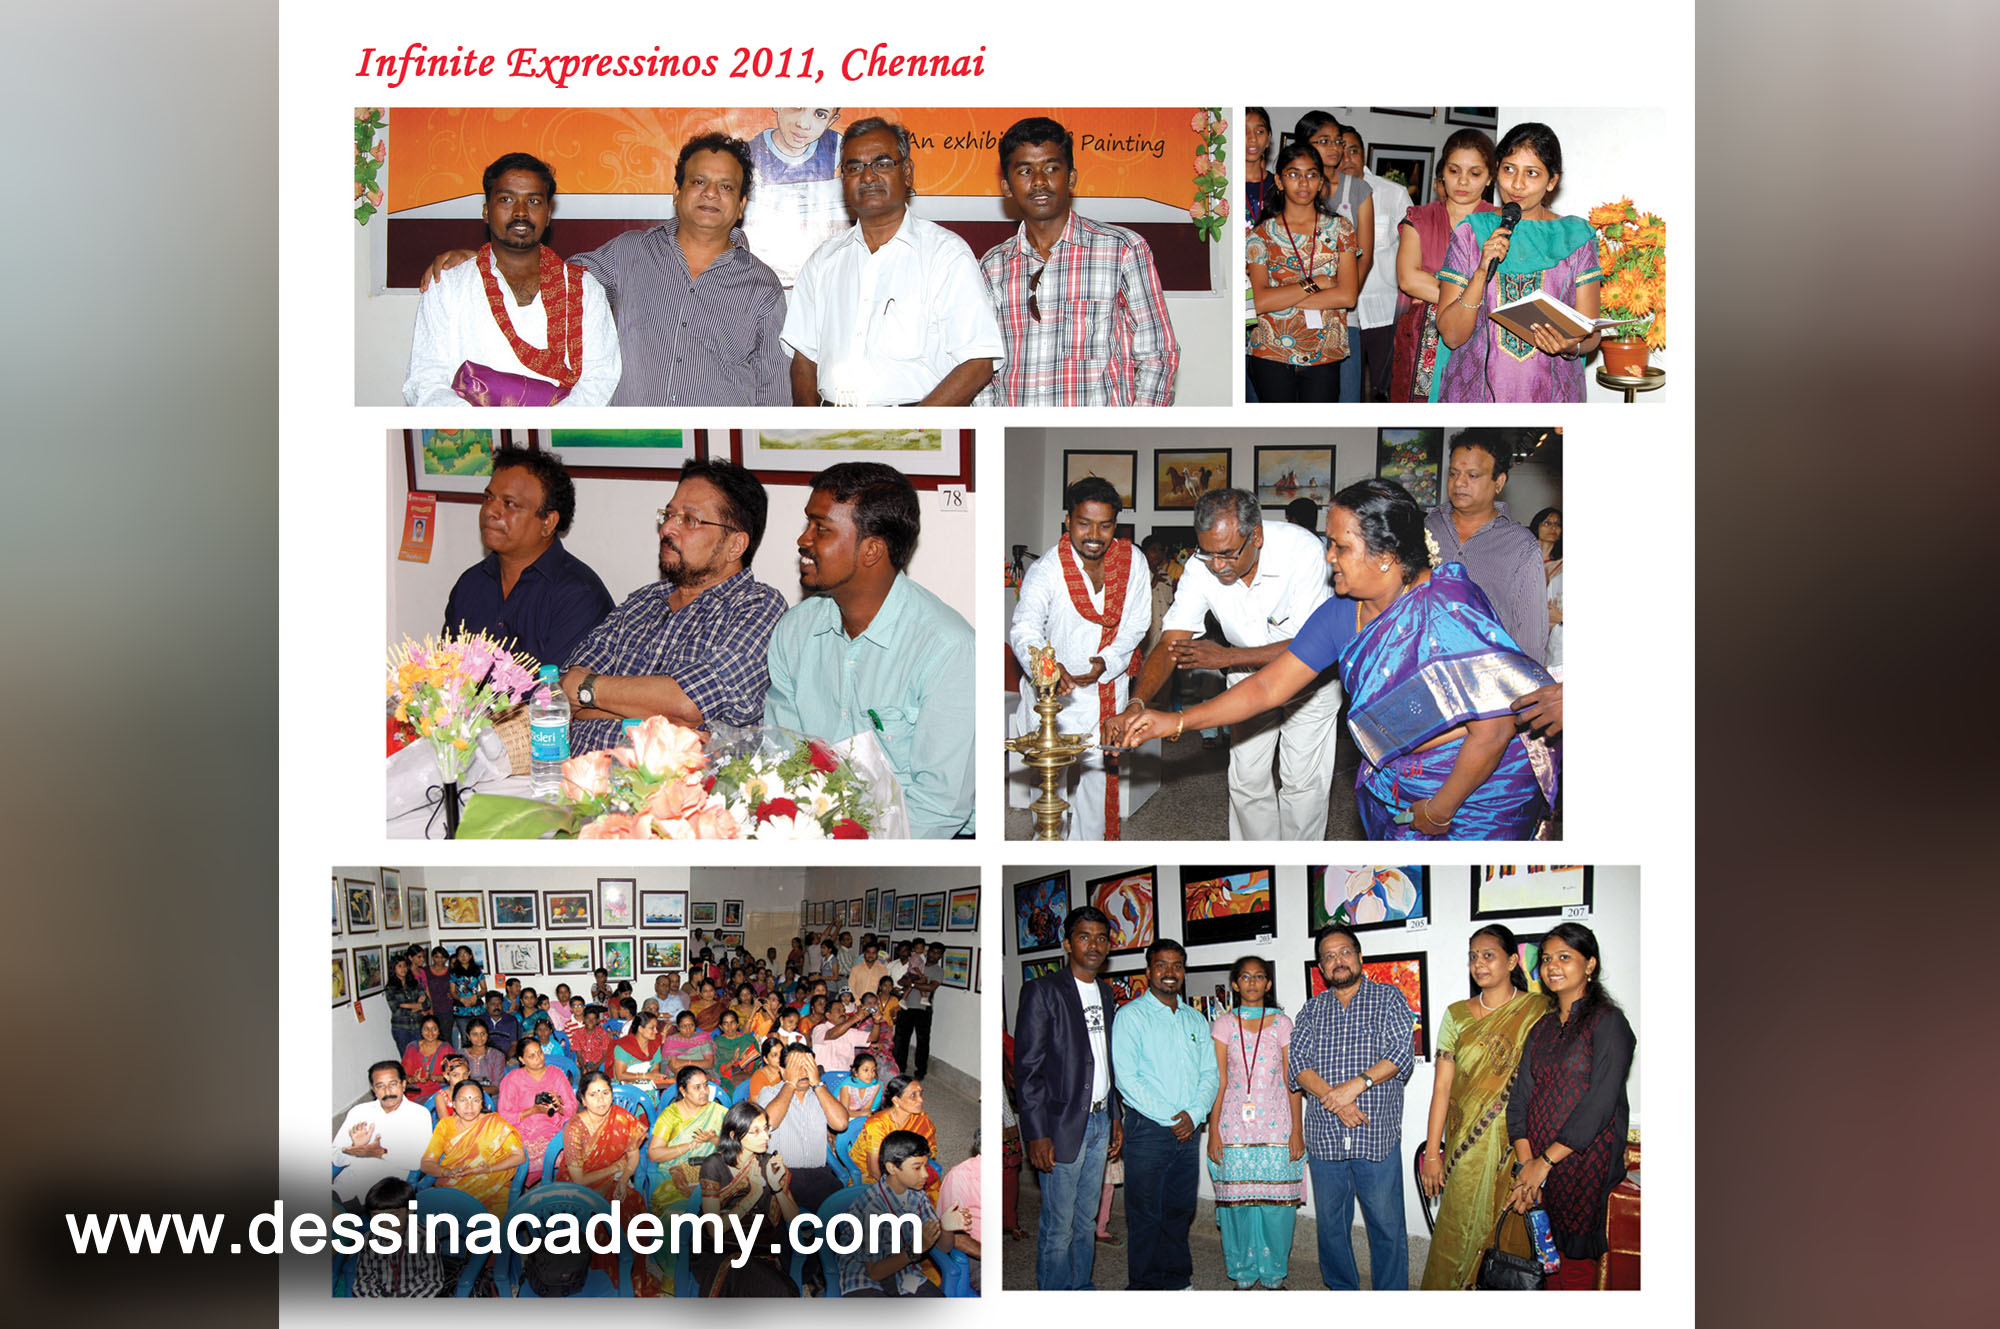 Dessin School of arts Event Gallery 5, part time fine arts courses classes in Anna Nagar East L BlockDessin School of Arts